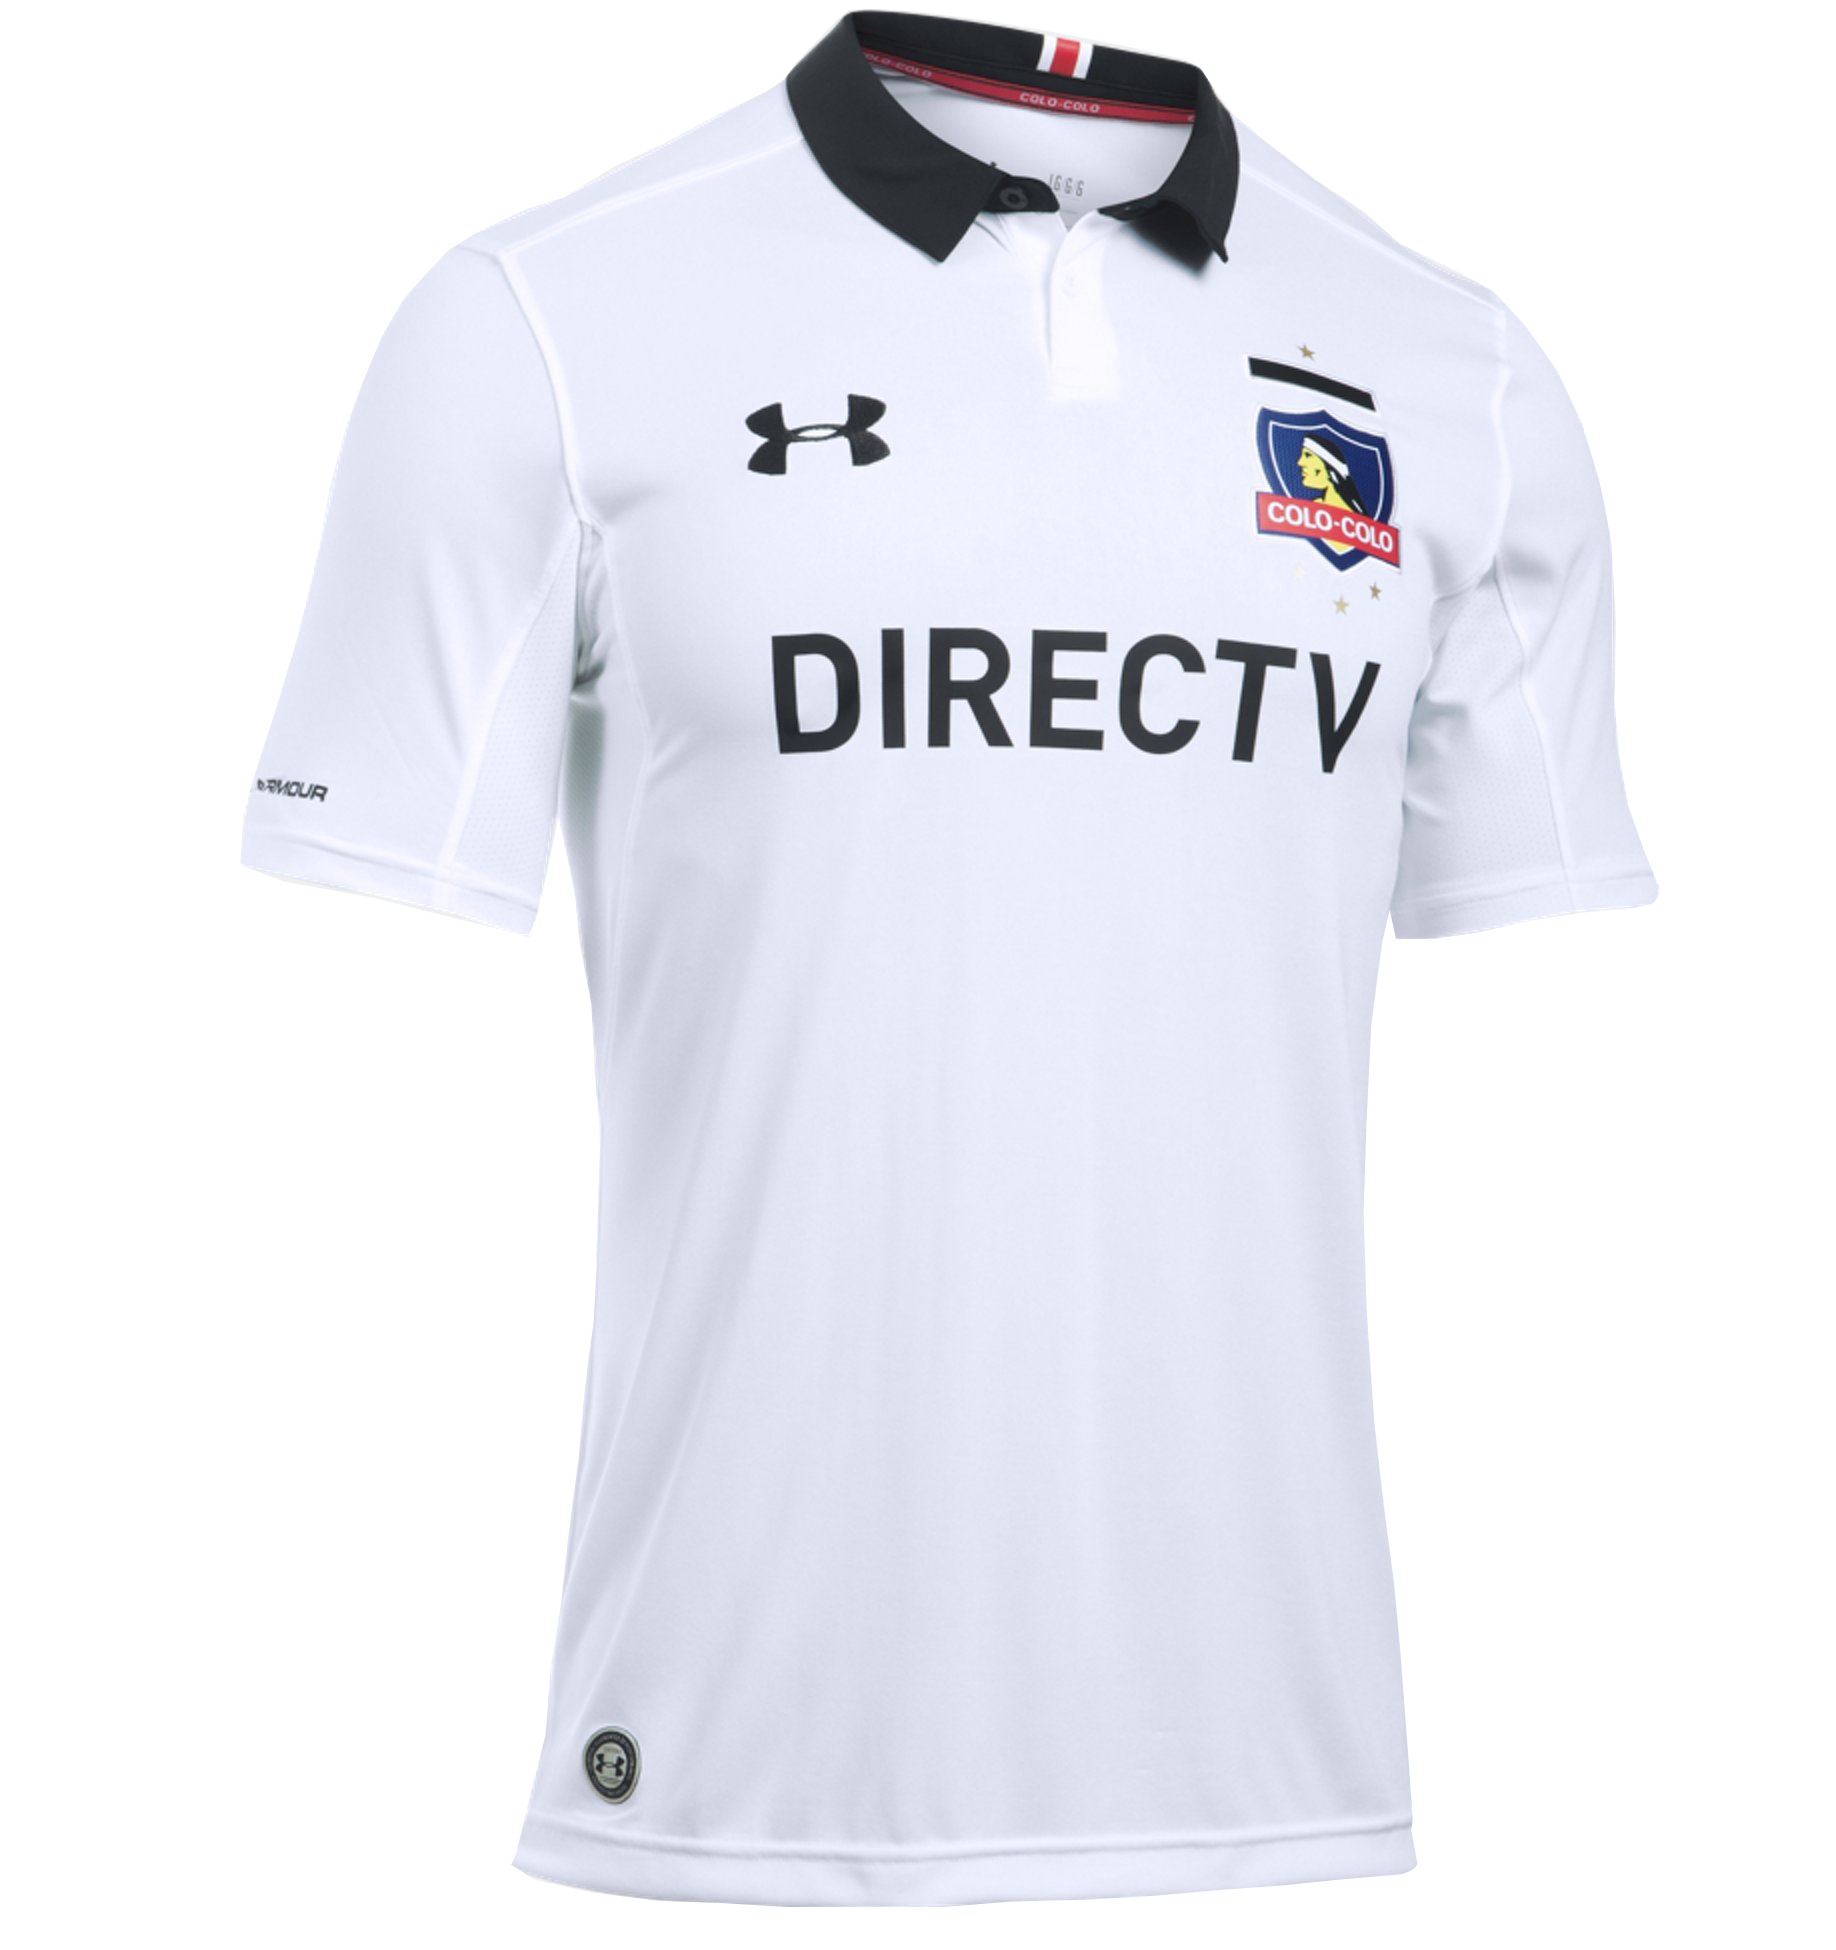 e9463979a1e Colo-Colo 2017-2018 Home Soccer Jersey camiseta de Futbol AAA Thailand  Quality Cheap Discount football shirts thai version wholesale online store  free ...